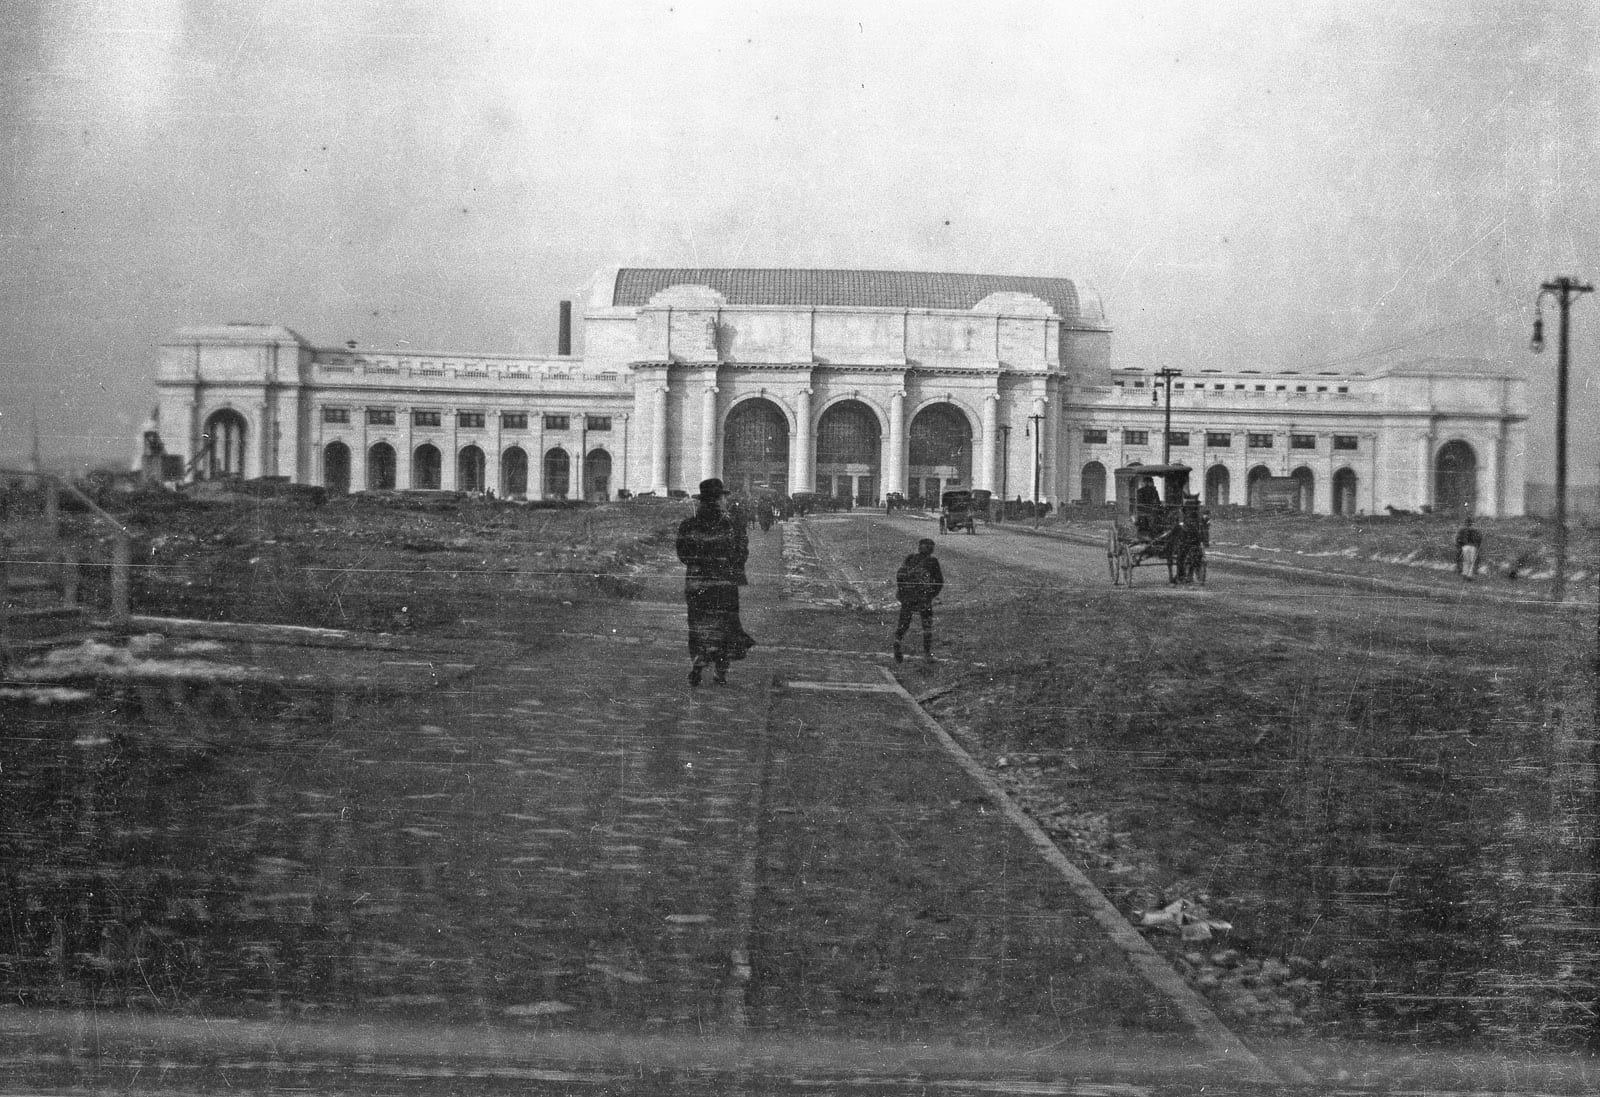 Taken by Sidney Duff in Washington, DC. Union Station was completed in October 1908. Here, only one of the six statues have been installed over the entrance. Another photo from the set shows the Tidal Basin frozen over, causing me to guess that this is January 1908.